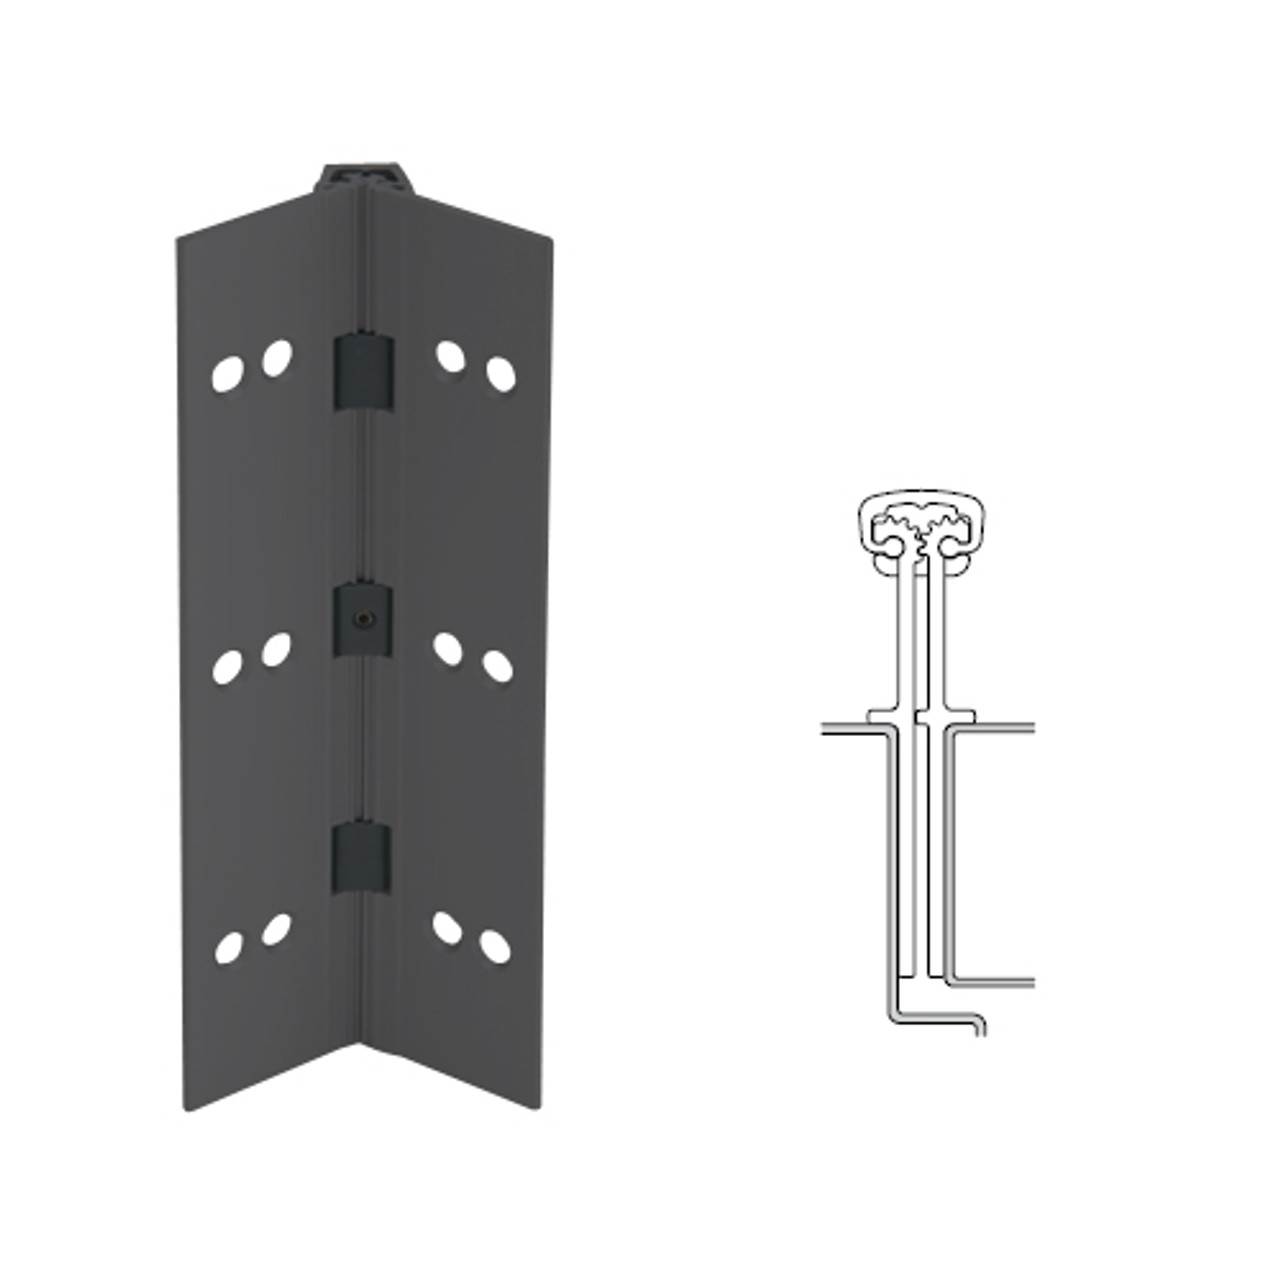 040XY-315AN-120 IVES Full Mortise Continuous Geared Hinges in Anodized Black